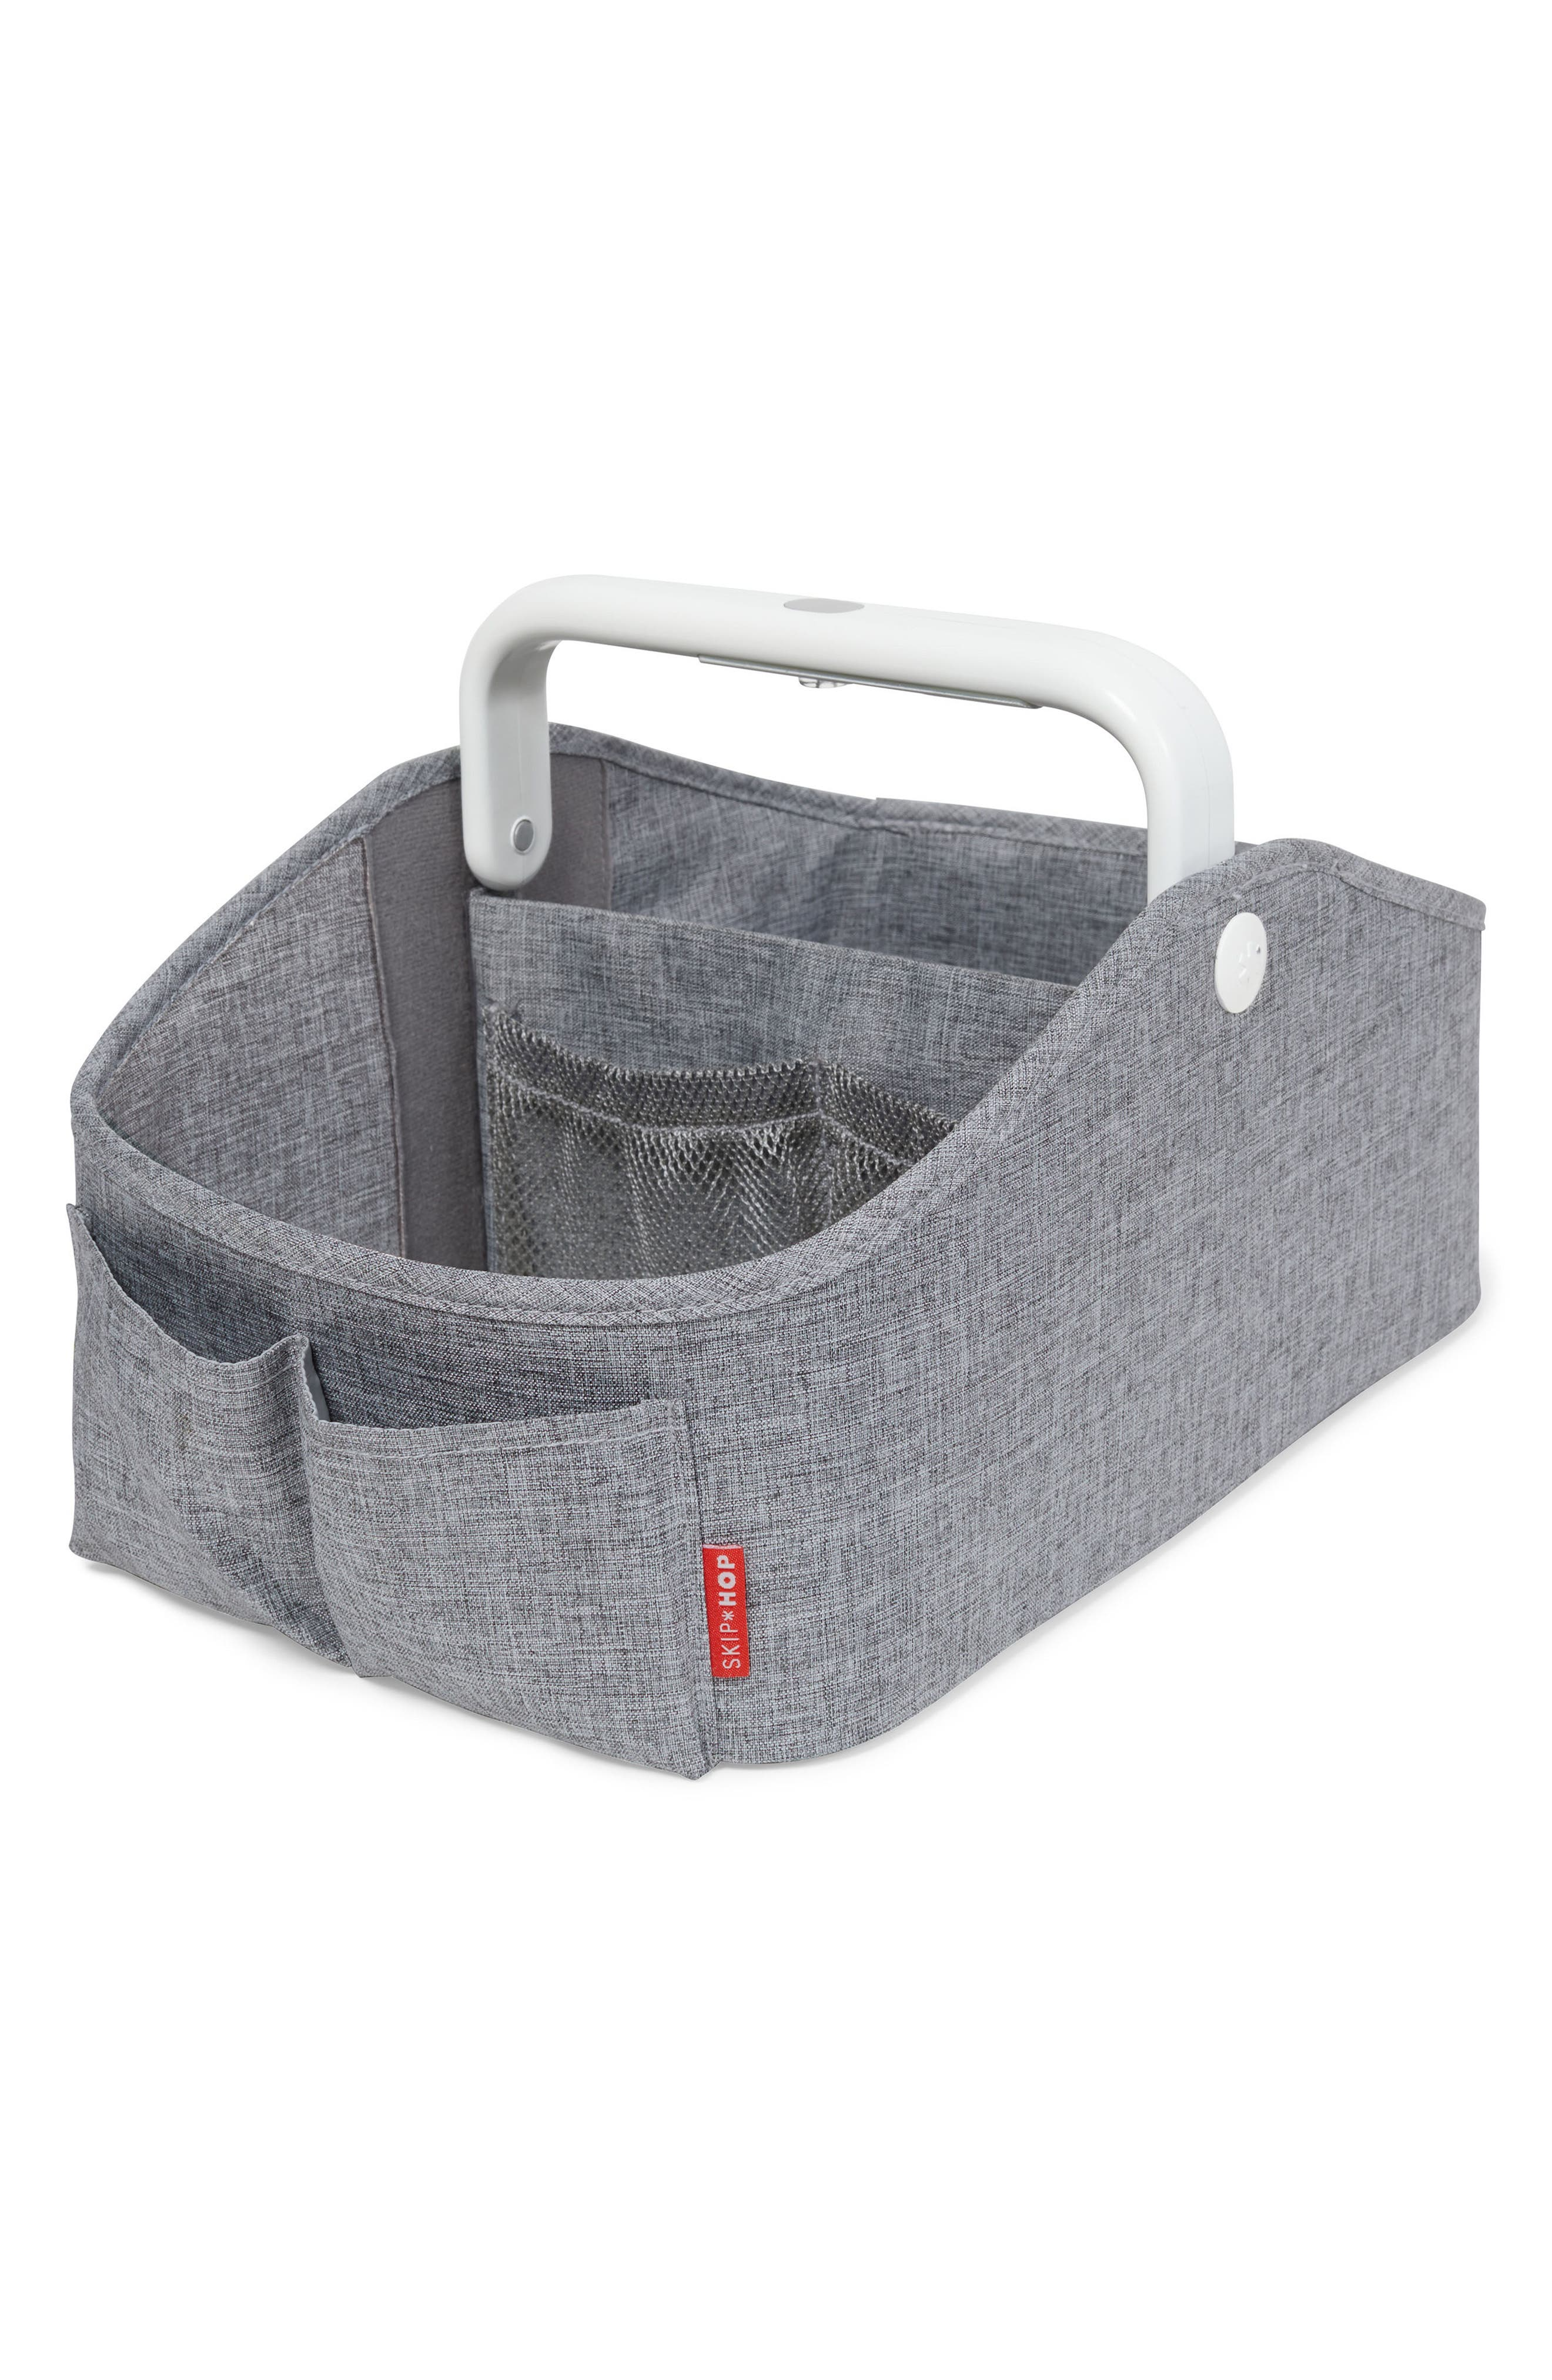 Light Up Diaper Caddy,                             Main thumbnail 1, color,                             HEATHER GREY